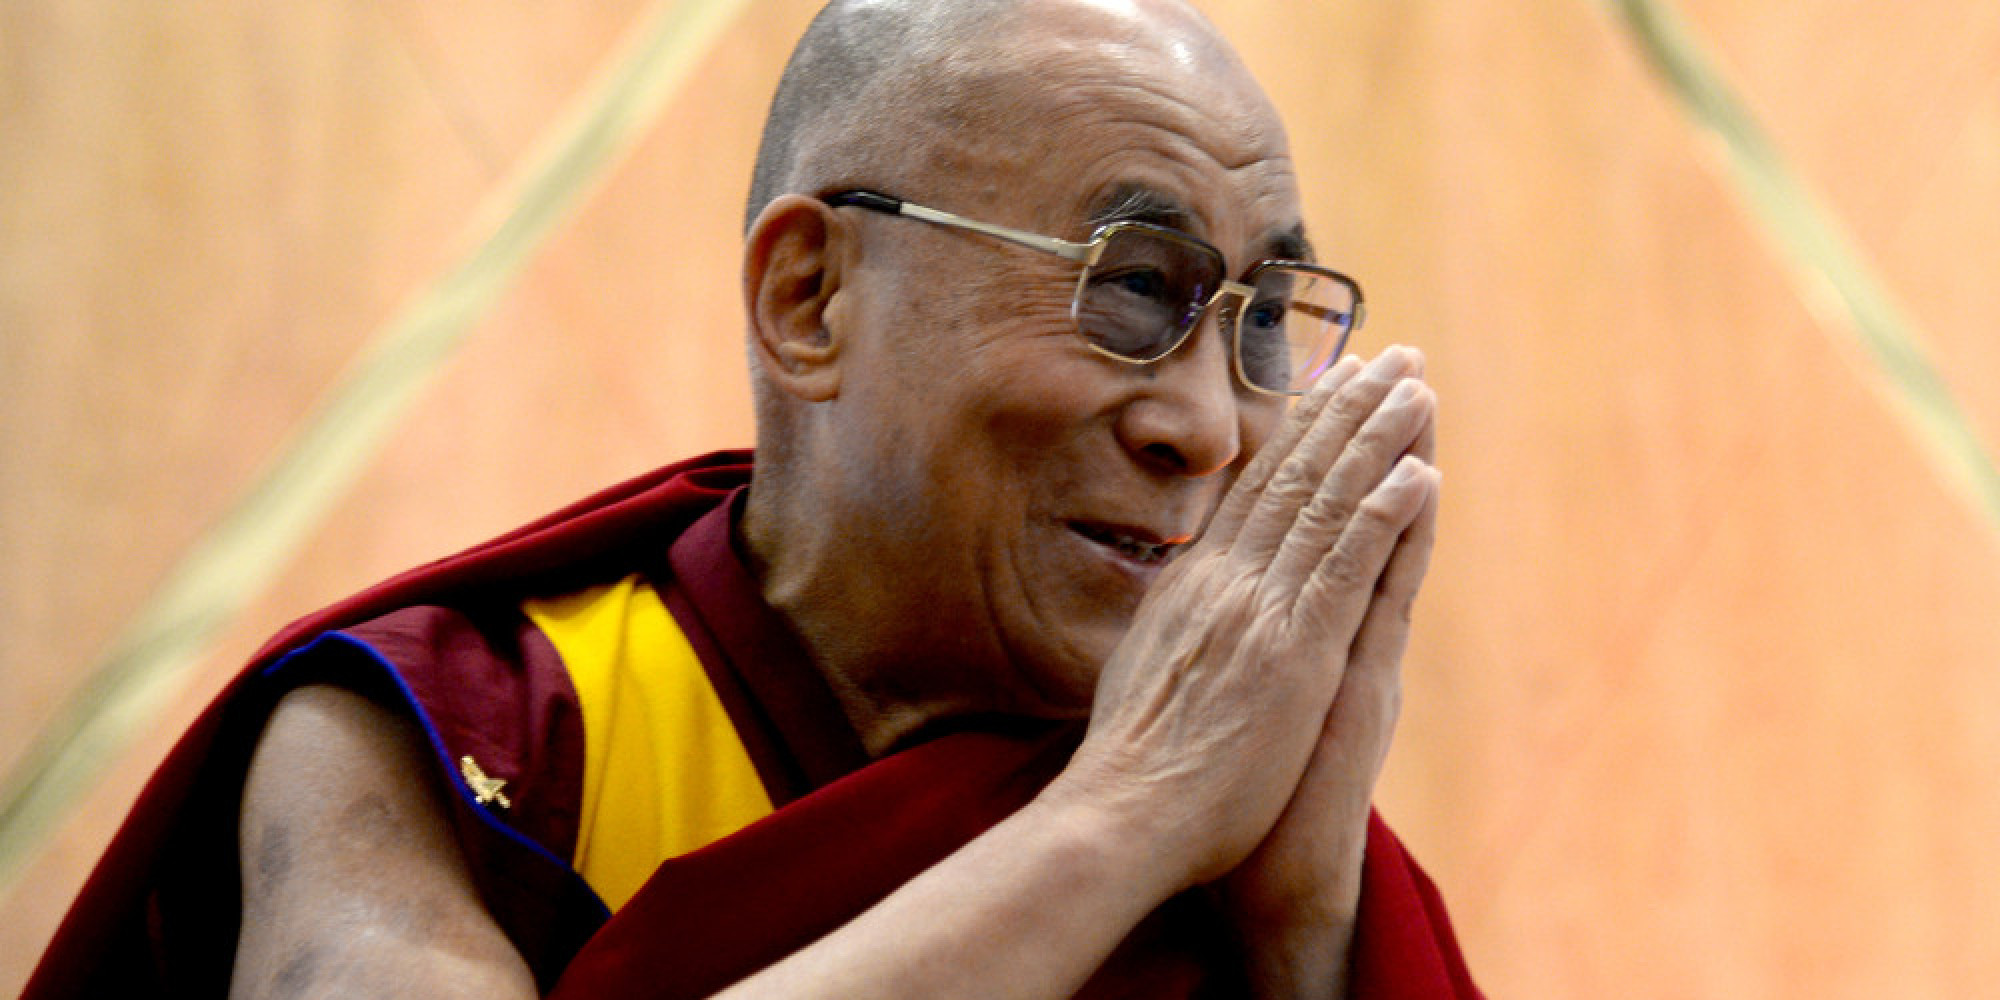 His Holiness the 14th Dalai Lama Appears At A Q&A With Ann Curry Courtesy Of The Lourdes Foundation